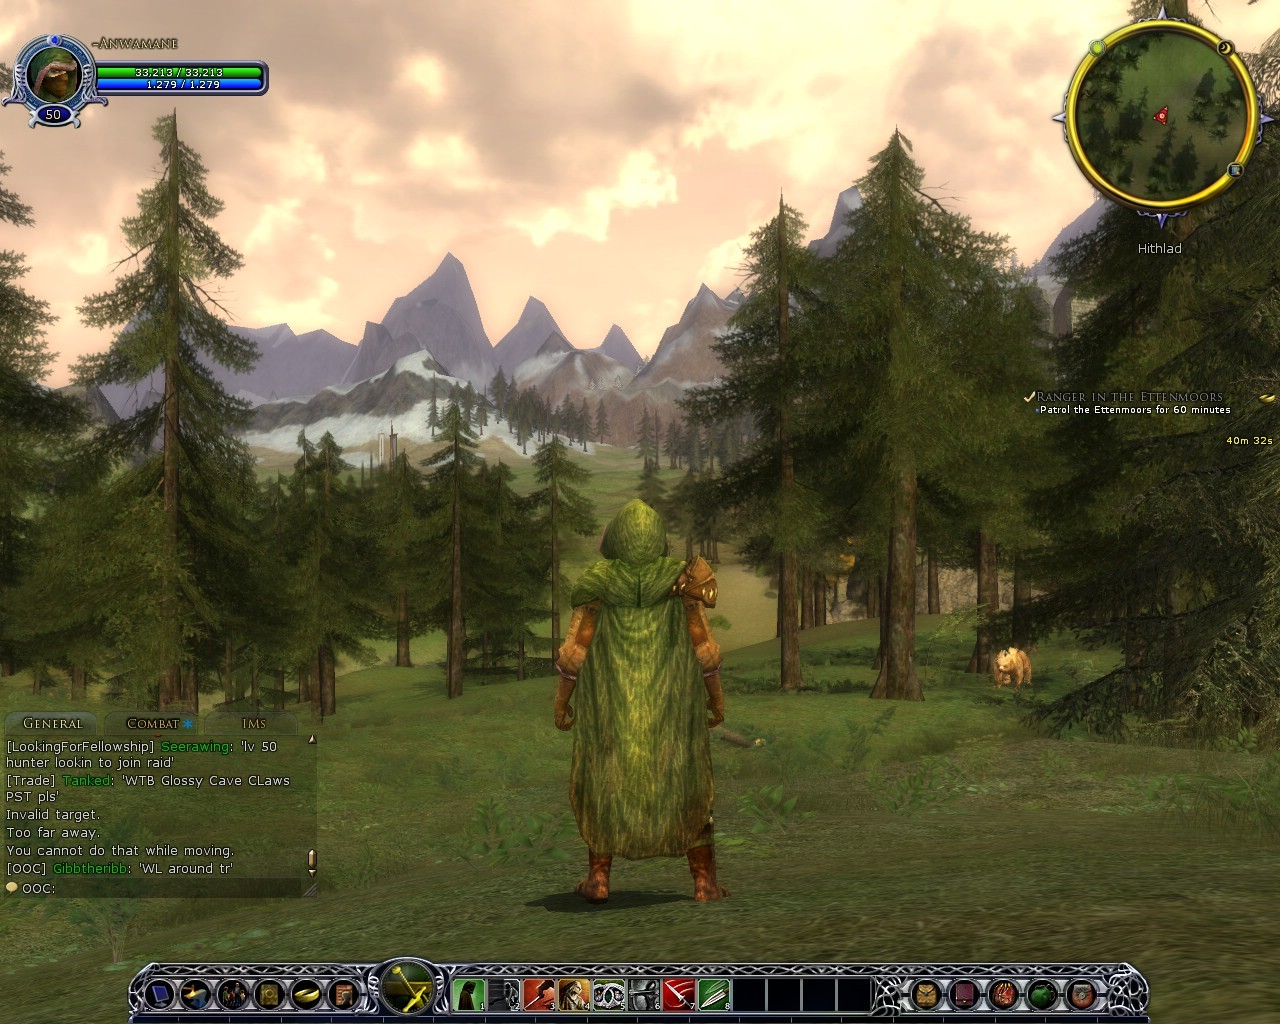 Lord of the Rings Online - As a Ranger